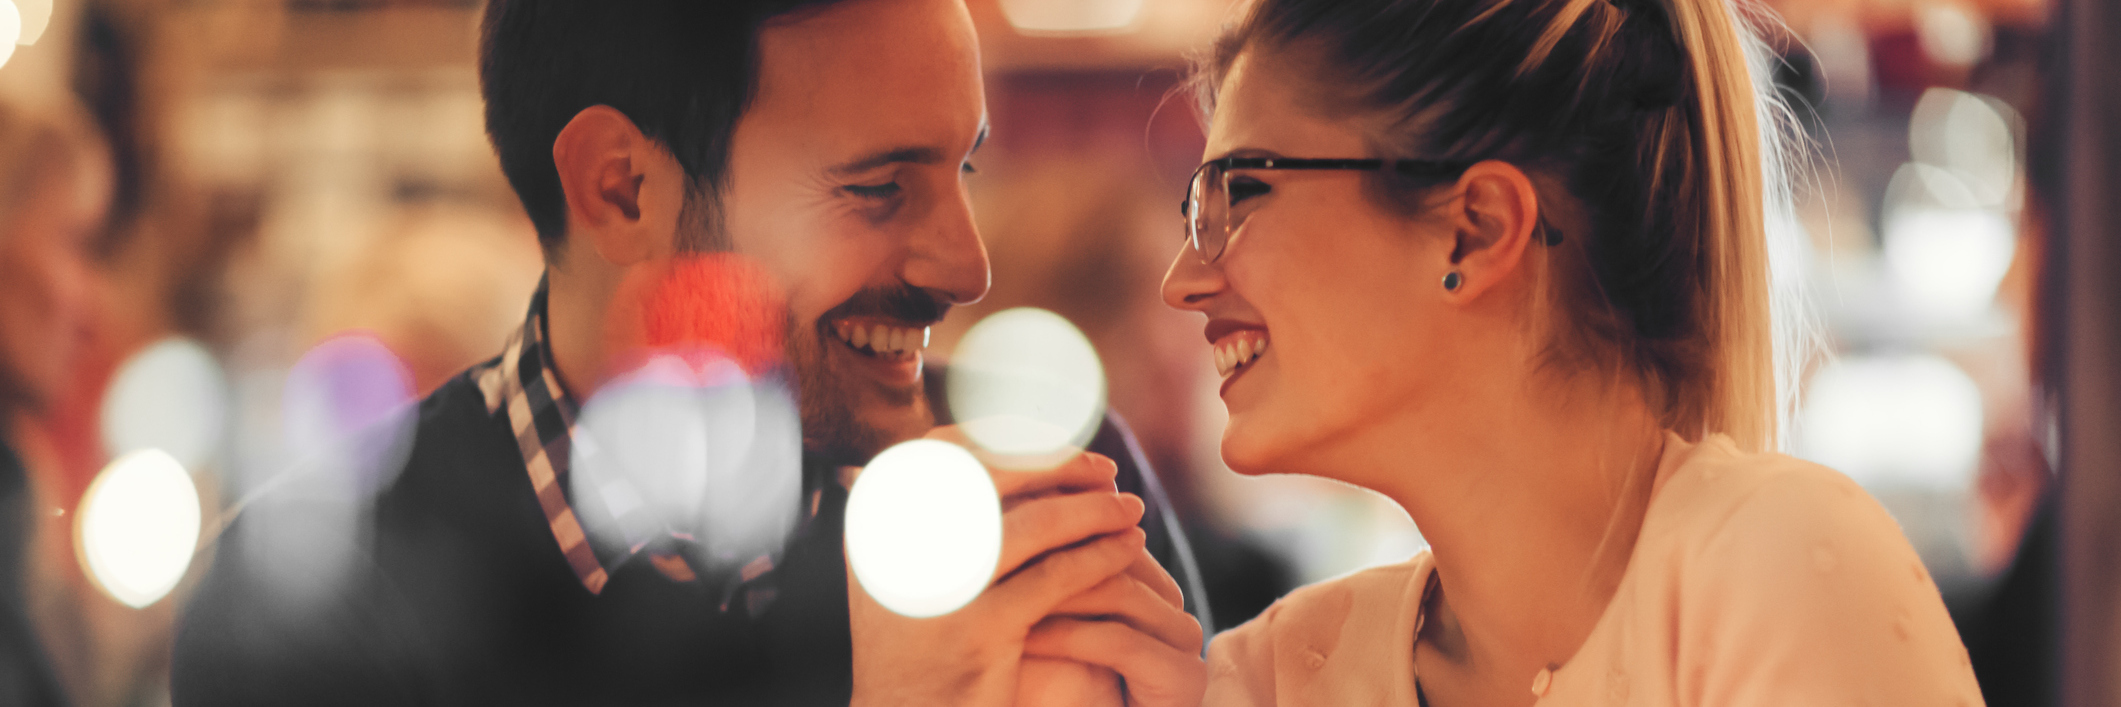 man and woman laughing together in a bar